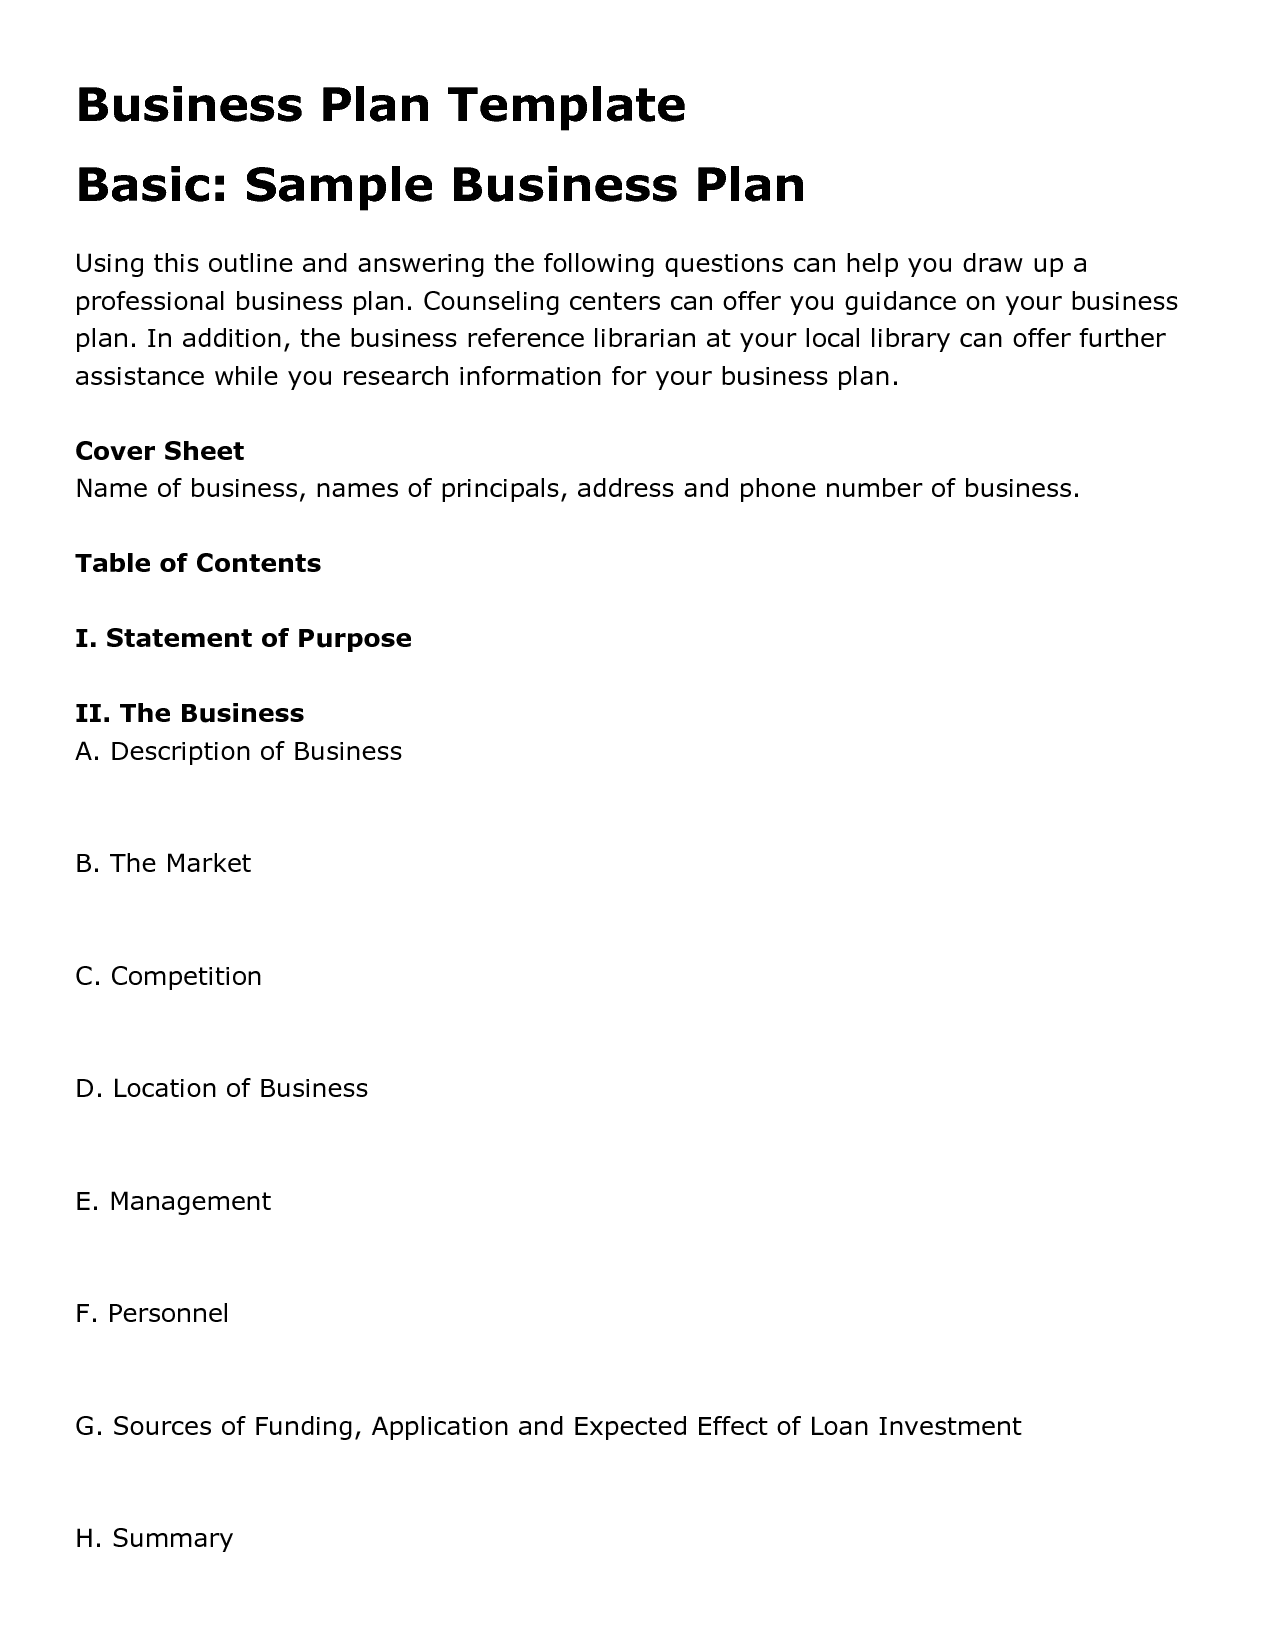 bplan business plan template